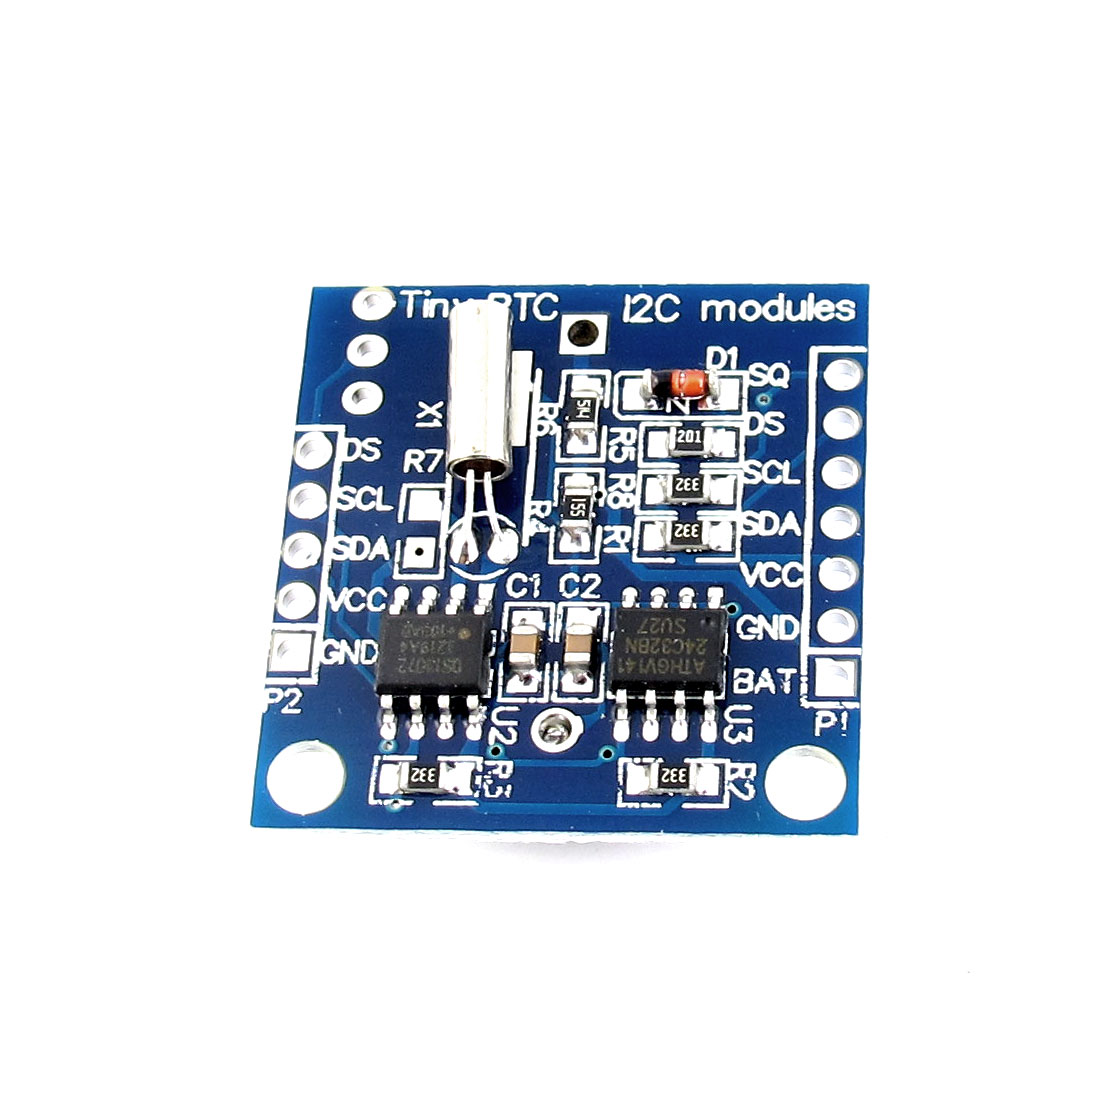 DC 3-5V I2C RTC DS1307 Real Time Clock Module Memory Storage PCB Board w LIR2032 Battery Holder